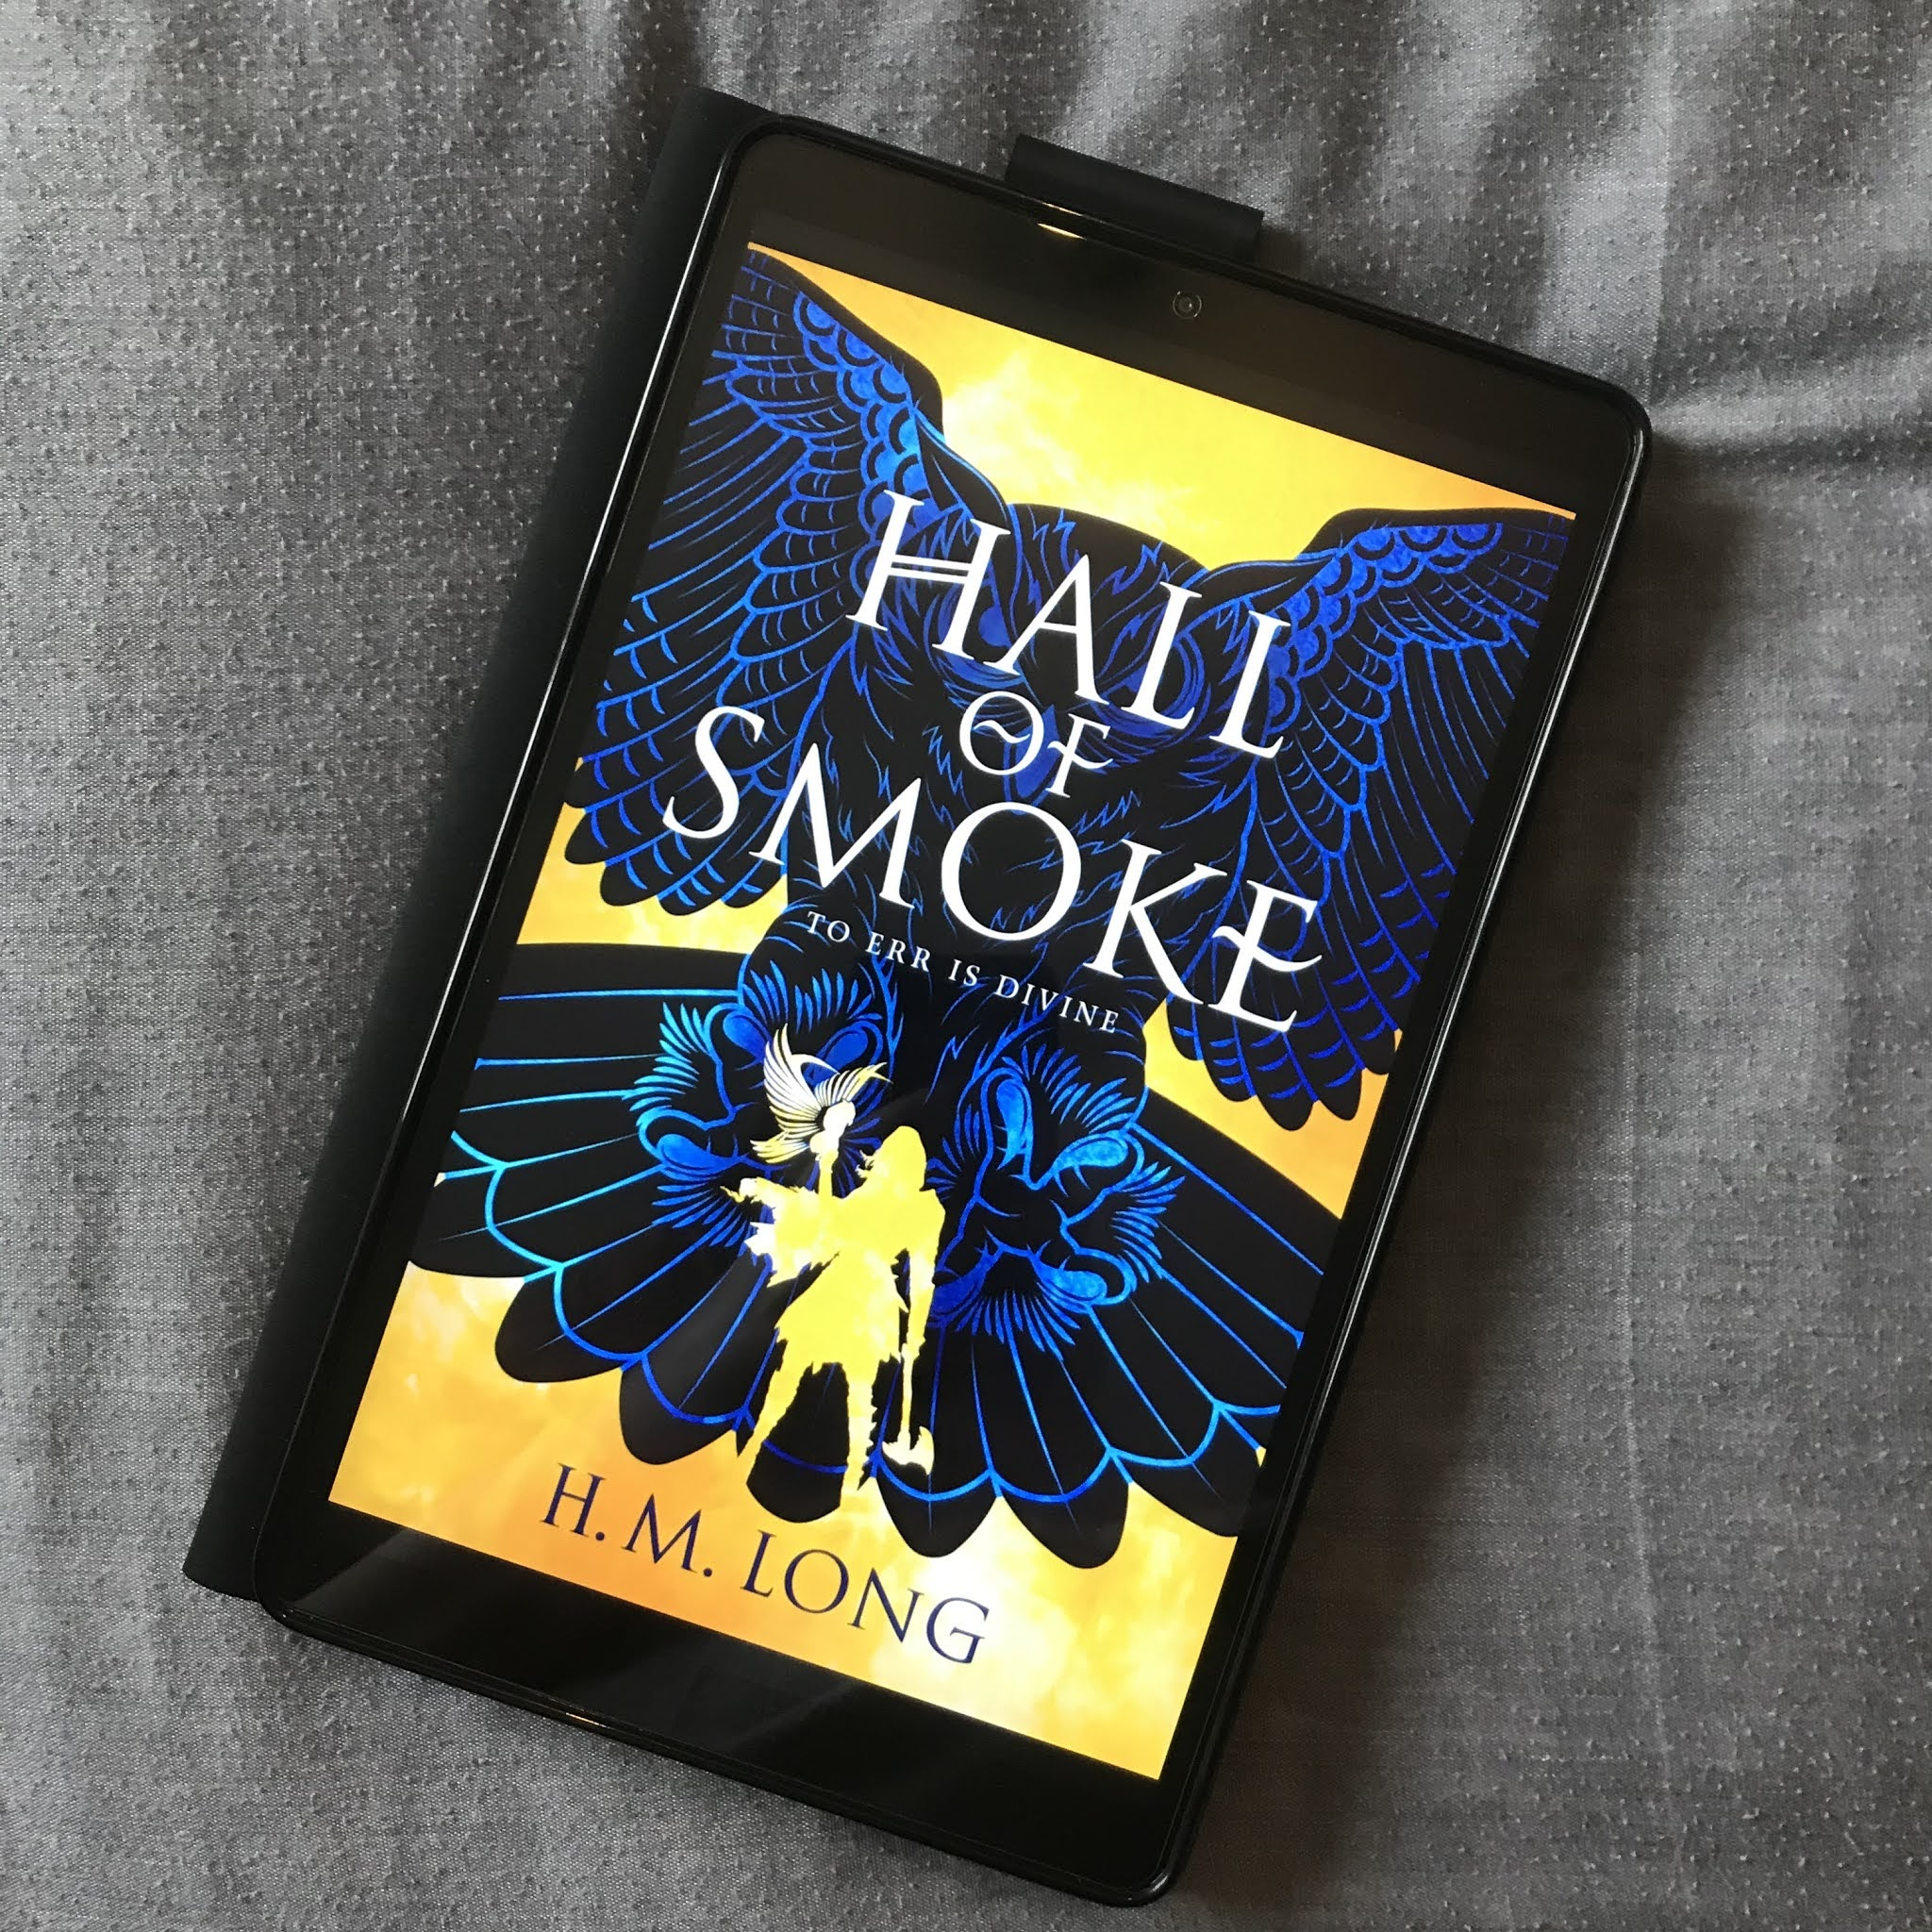 Hall of Smoke by H. M. Long